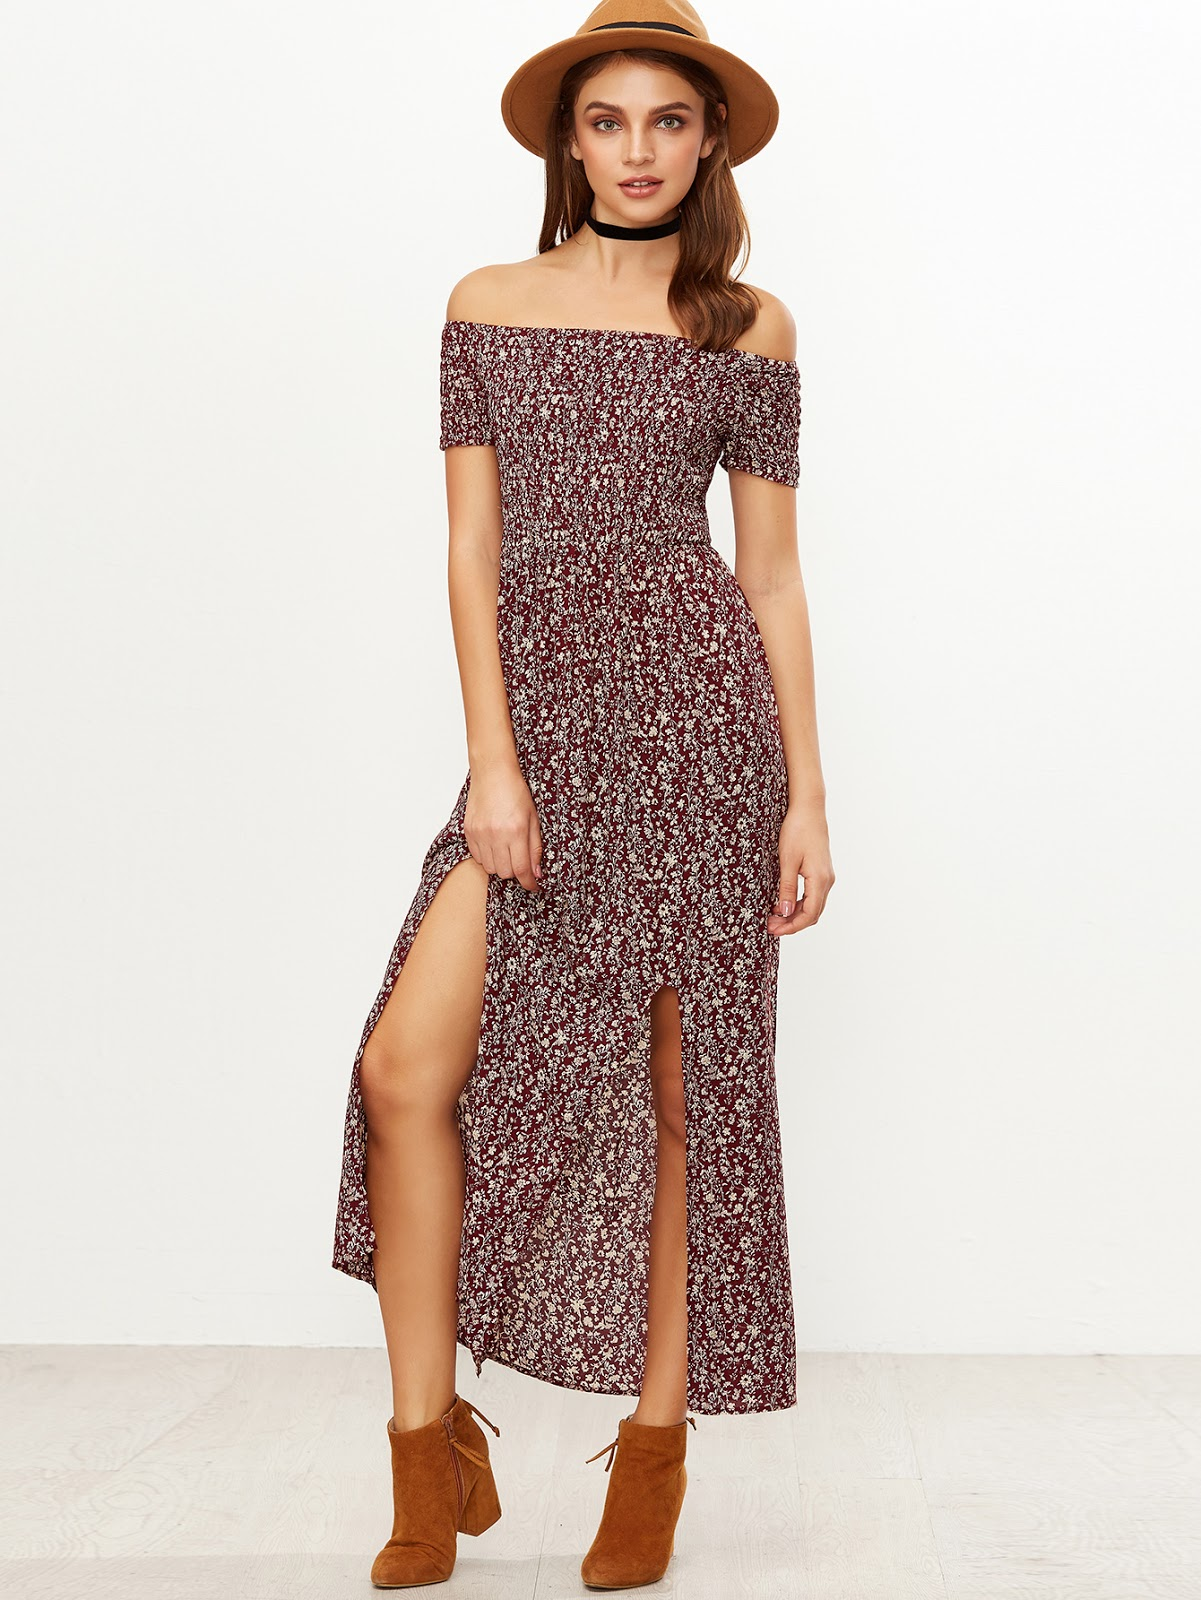 Shirred Off-The-Shoulder Slit-Front Floral Dress - Burgundy